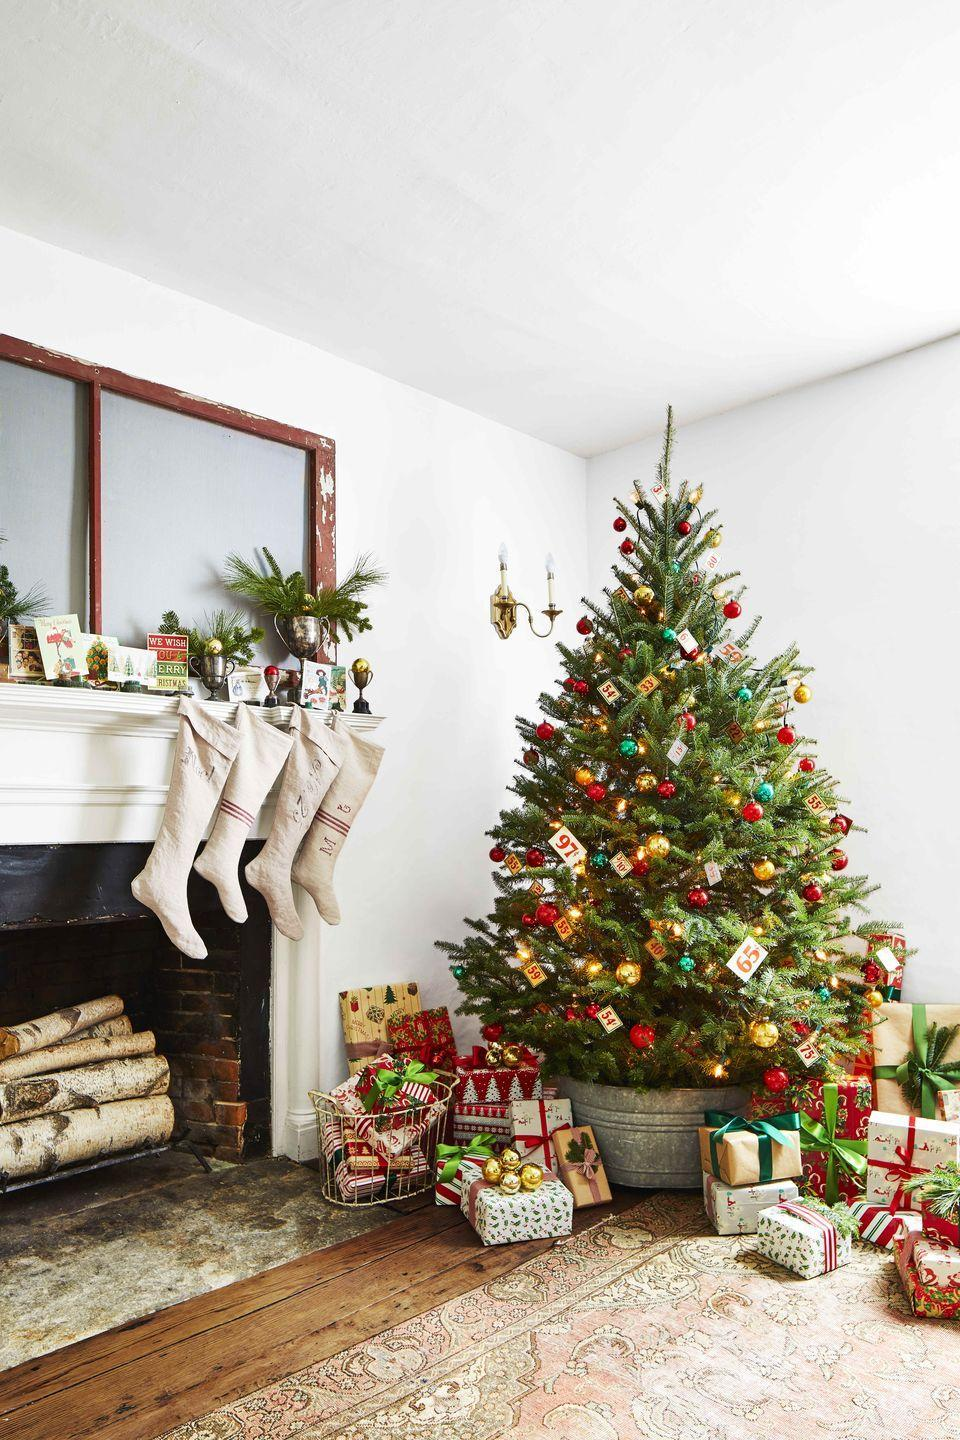 "<p>An oversize galvanized bucket becomes the container for a beautifully fluffy Christmas tree in this 208-year-old Connecticut farmhouse. It also pairs perfectly with the antique grain sack stockings hung from the original fireplace.</p><p><a class=""link rapid-noclick-resp"" href=""https://www.amazon.com/Behrens-105LFT-Gallon-Dipped-Silver/dp/B06VX29TXZ/ref=sr_1_37?tag=syn-yahoo-20&ascsubtag=%5Bartid%7C10050.g.28746492%5Bsrc%7Cyahoo-us"" rel=""nofollow noopener"" target=""_blank"" data-ylk=""slk:SHOP GALVANIZED BUCKETS"">SHOP GALVANIZED BUCKETS</a></p>"